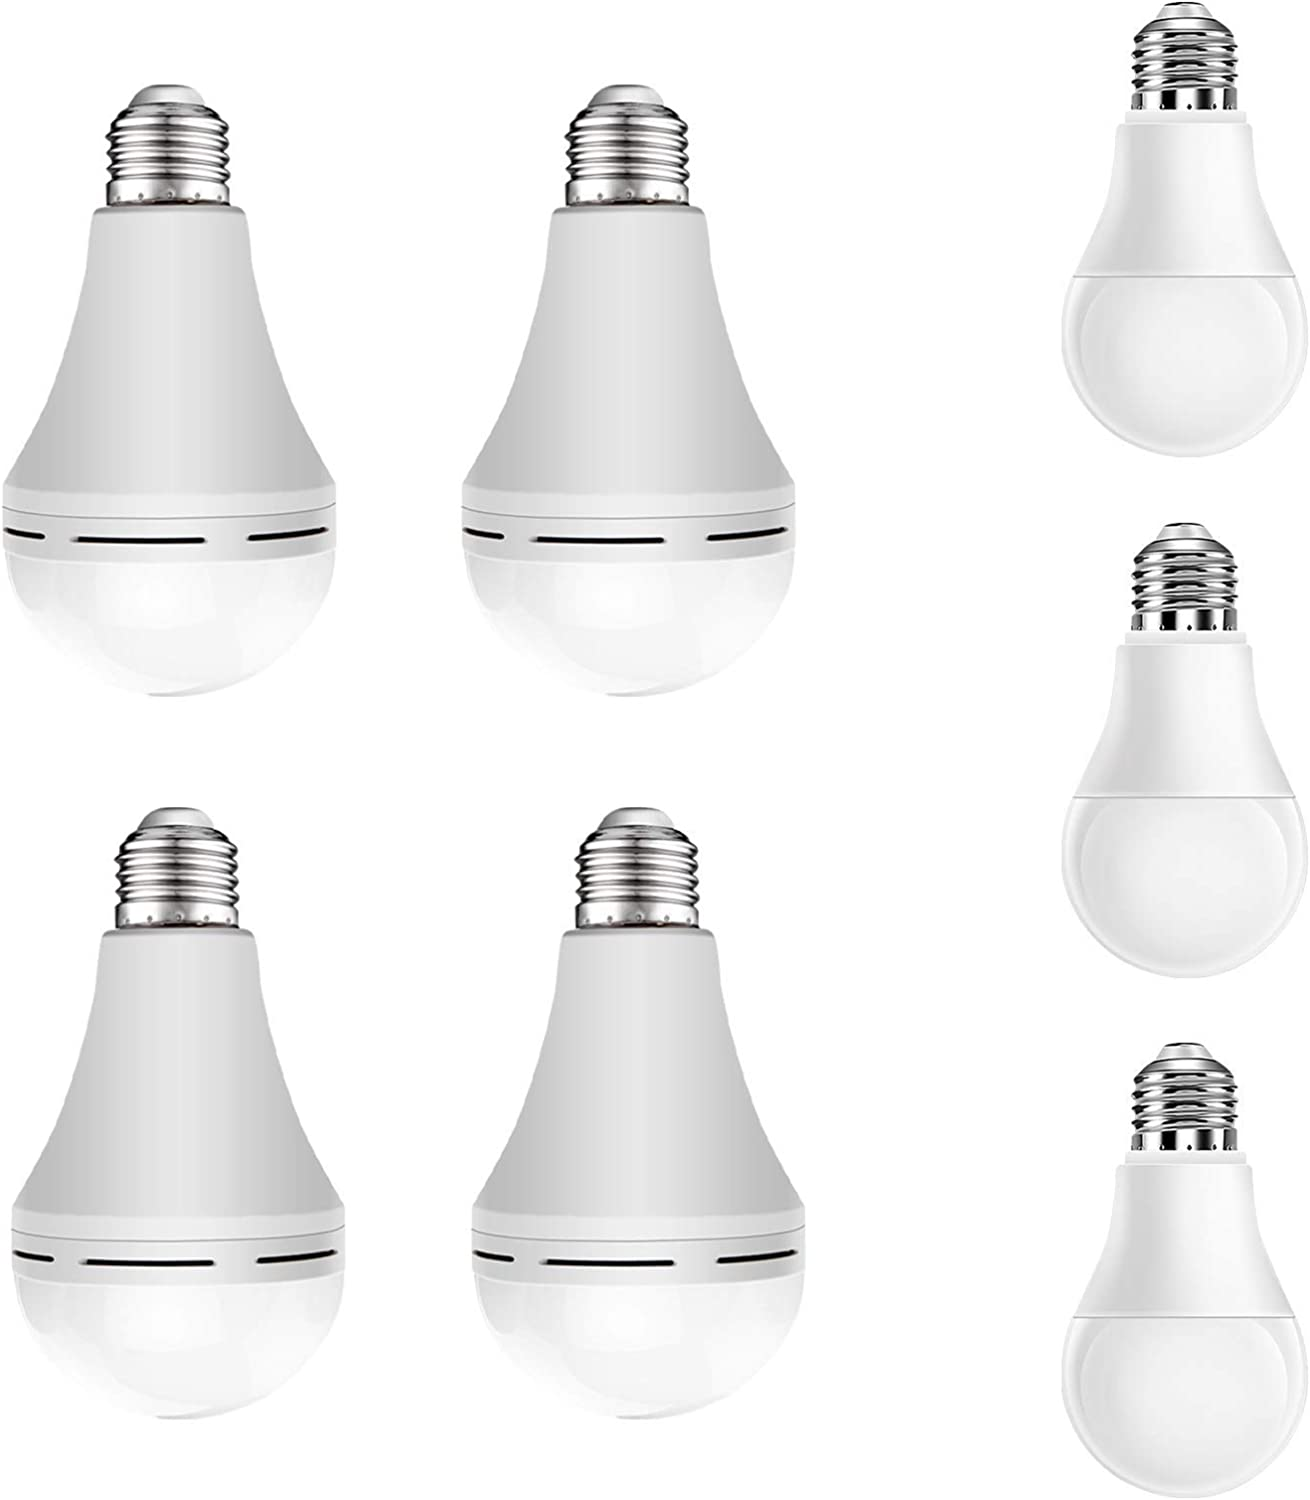 【5% Off Bundle】 Neporal 4PK Daylight 15W Emergency Rechargeable Light Bulb for Home Power Failure & 3PK Daylight 9W Normal LED Light Bulb